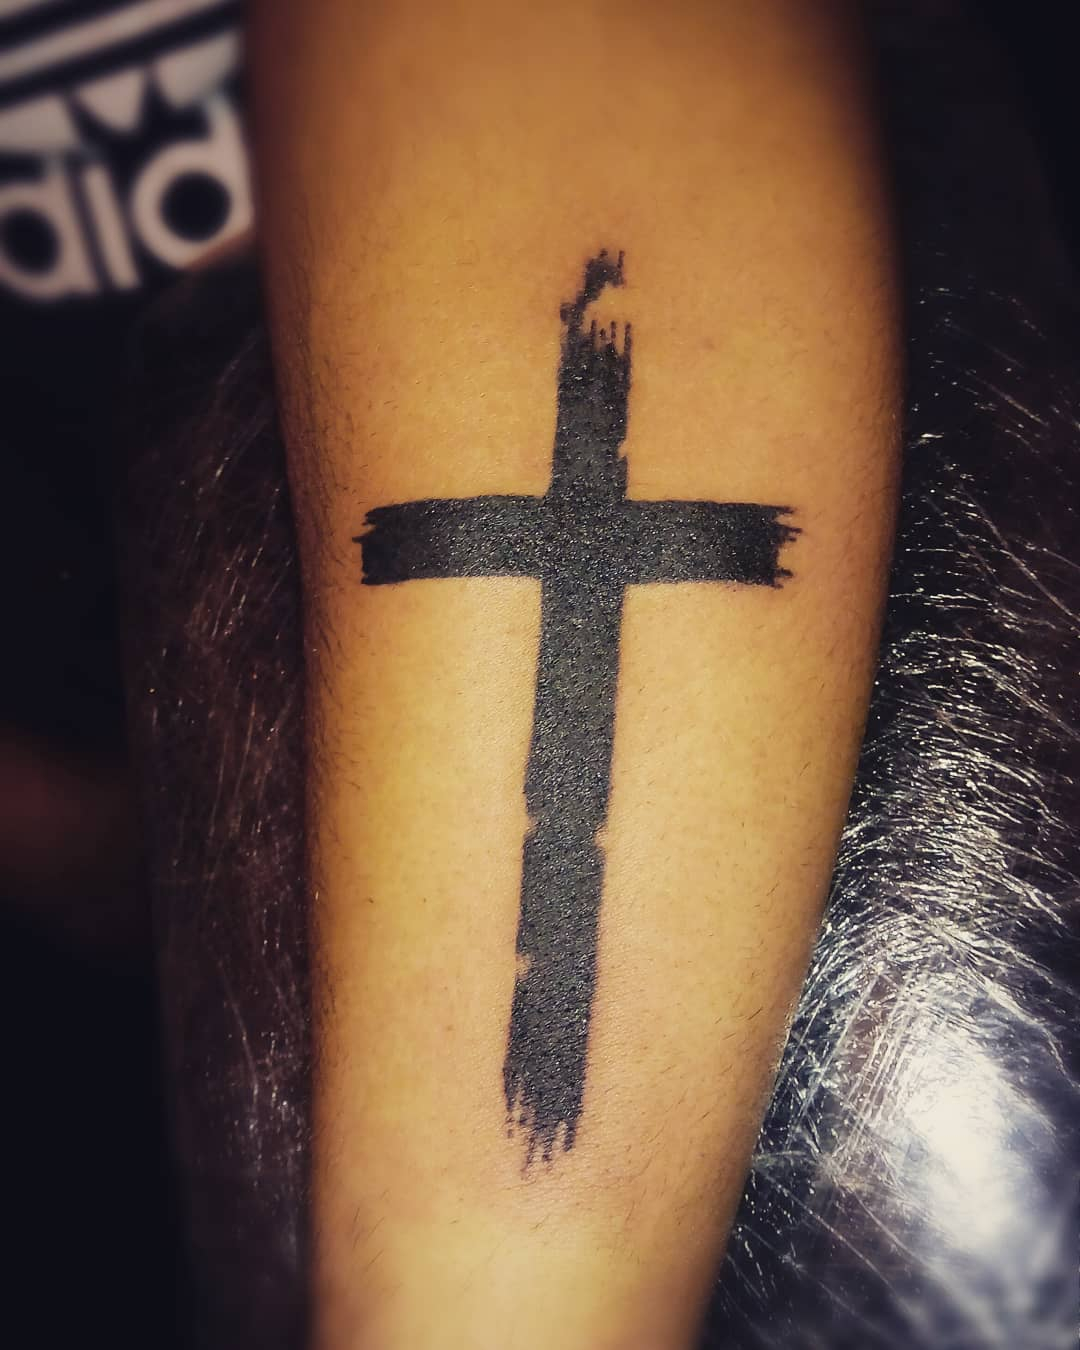 125 Best Cross Tattoos You Can Try Meanings Wild Tattoo Art intended for sizing 1080 X 1350